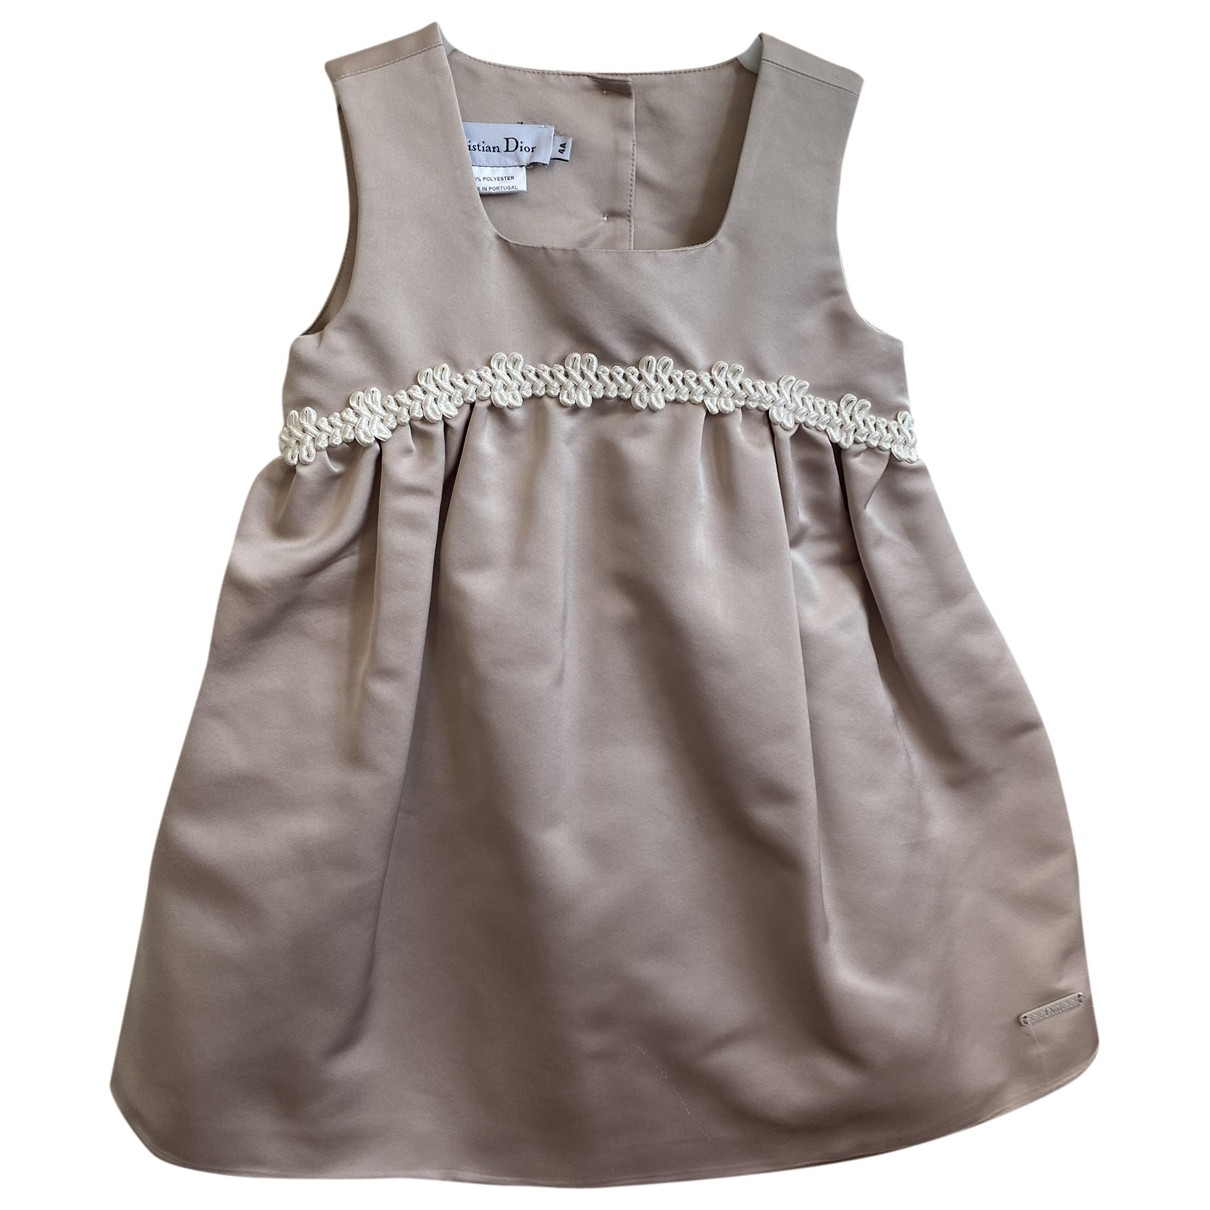 Dior \N Ecru dress for Kids 4 years - up to 102cm FR